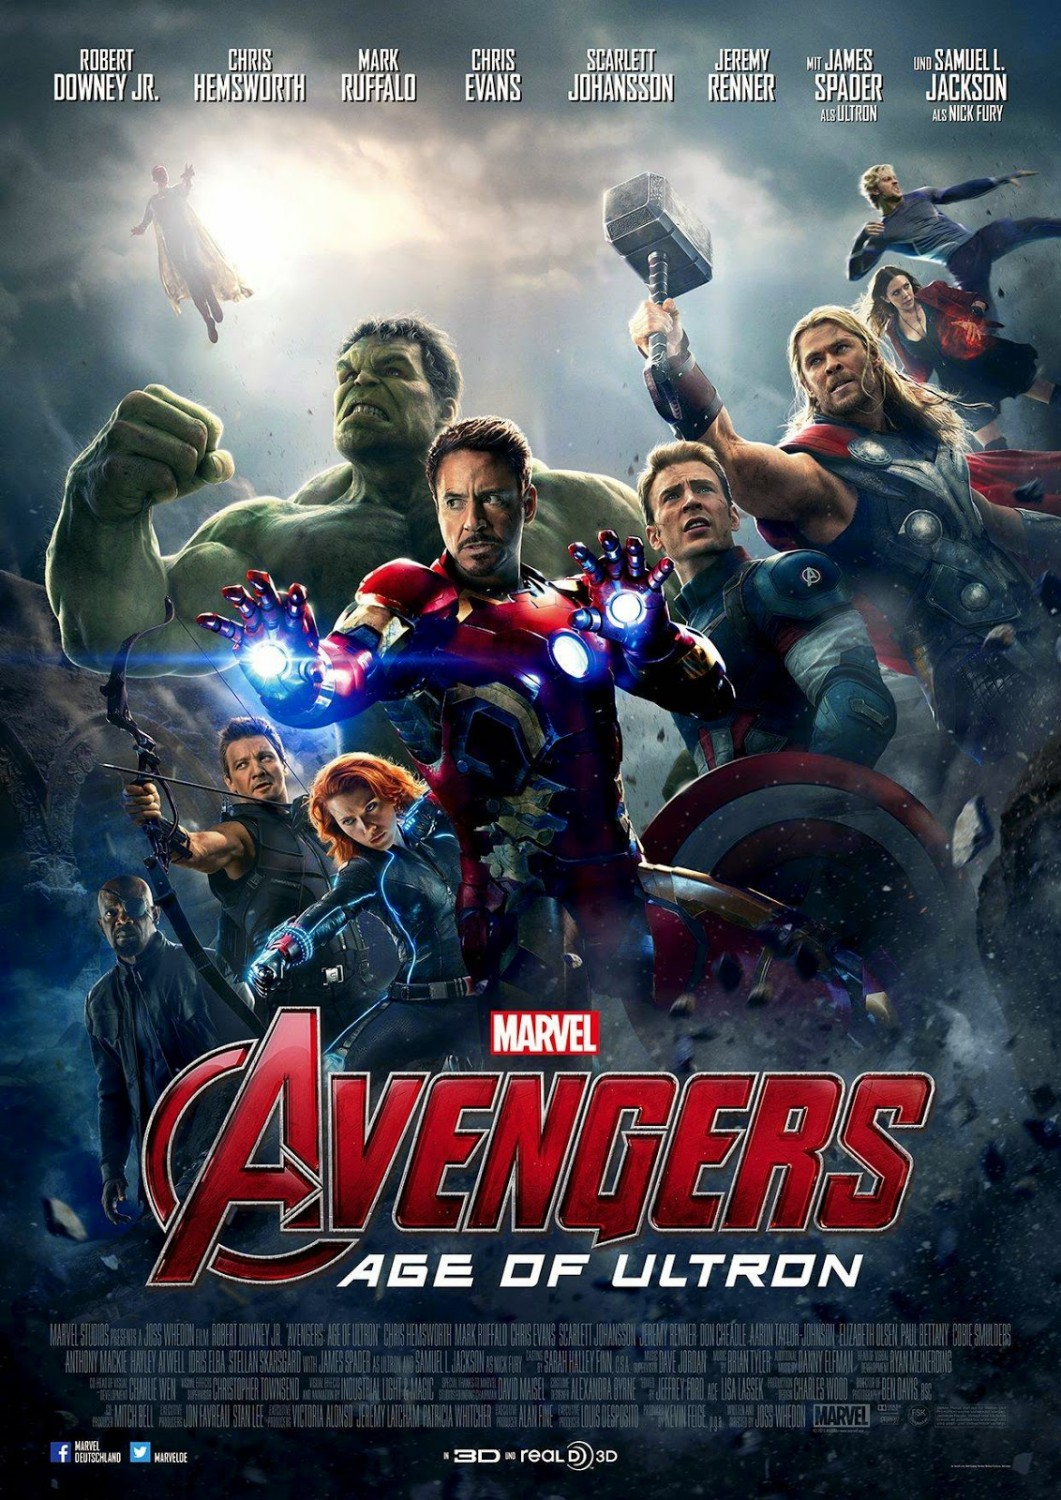 Avengers Age Of Ultron – Trailer 3